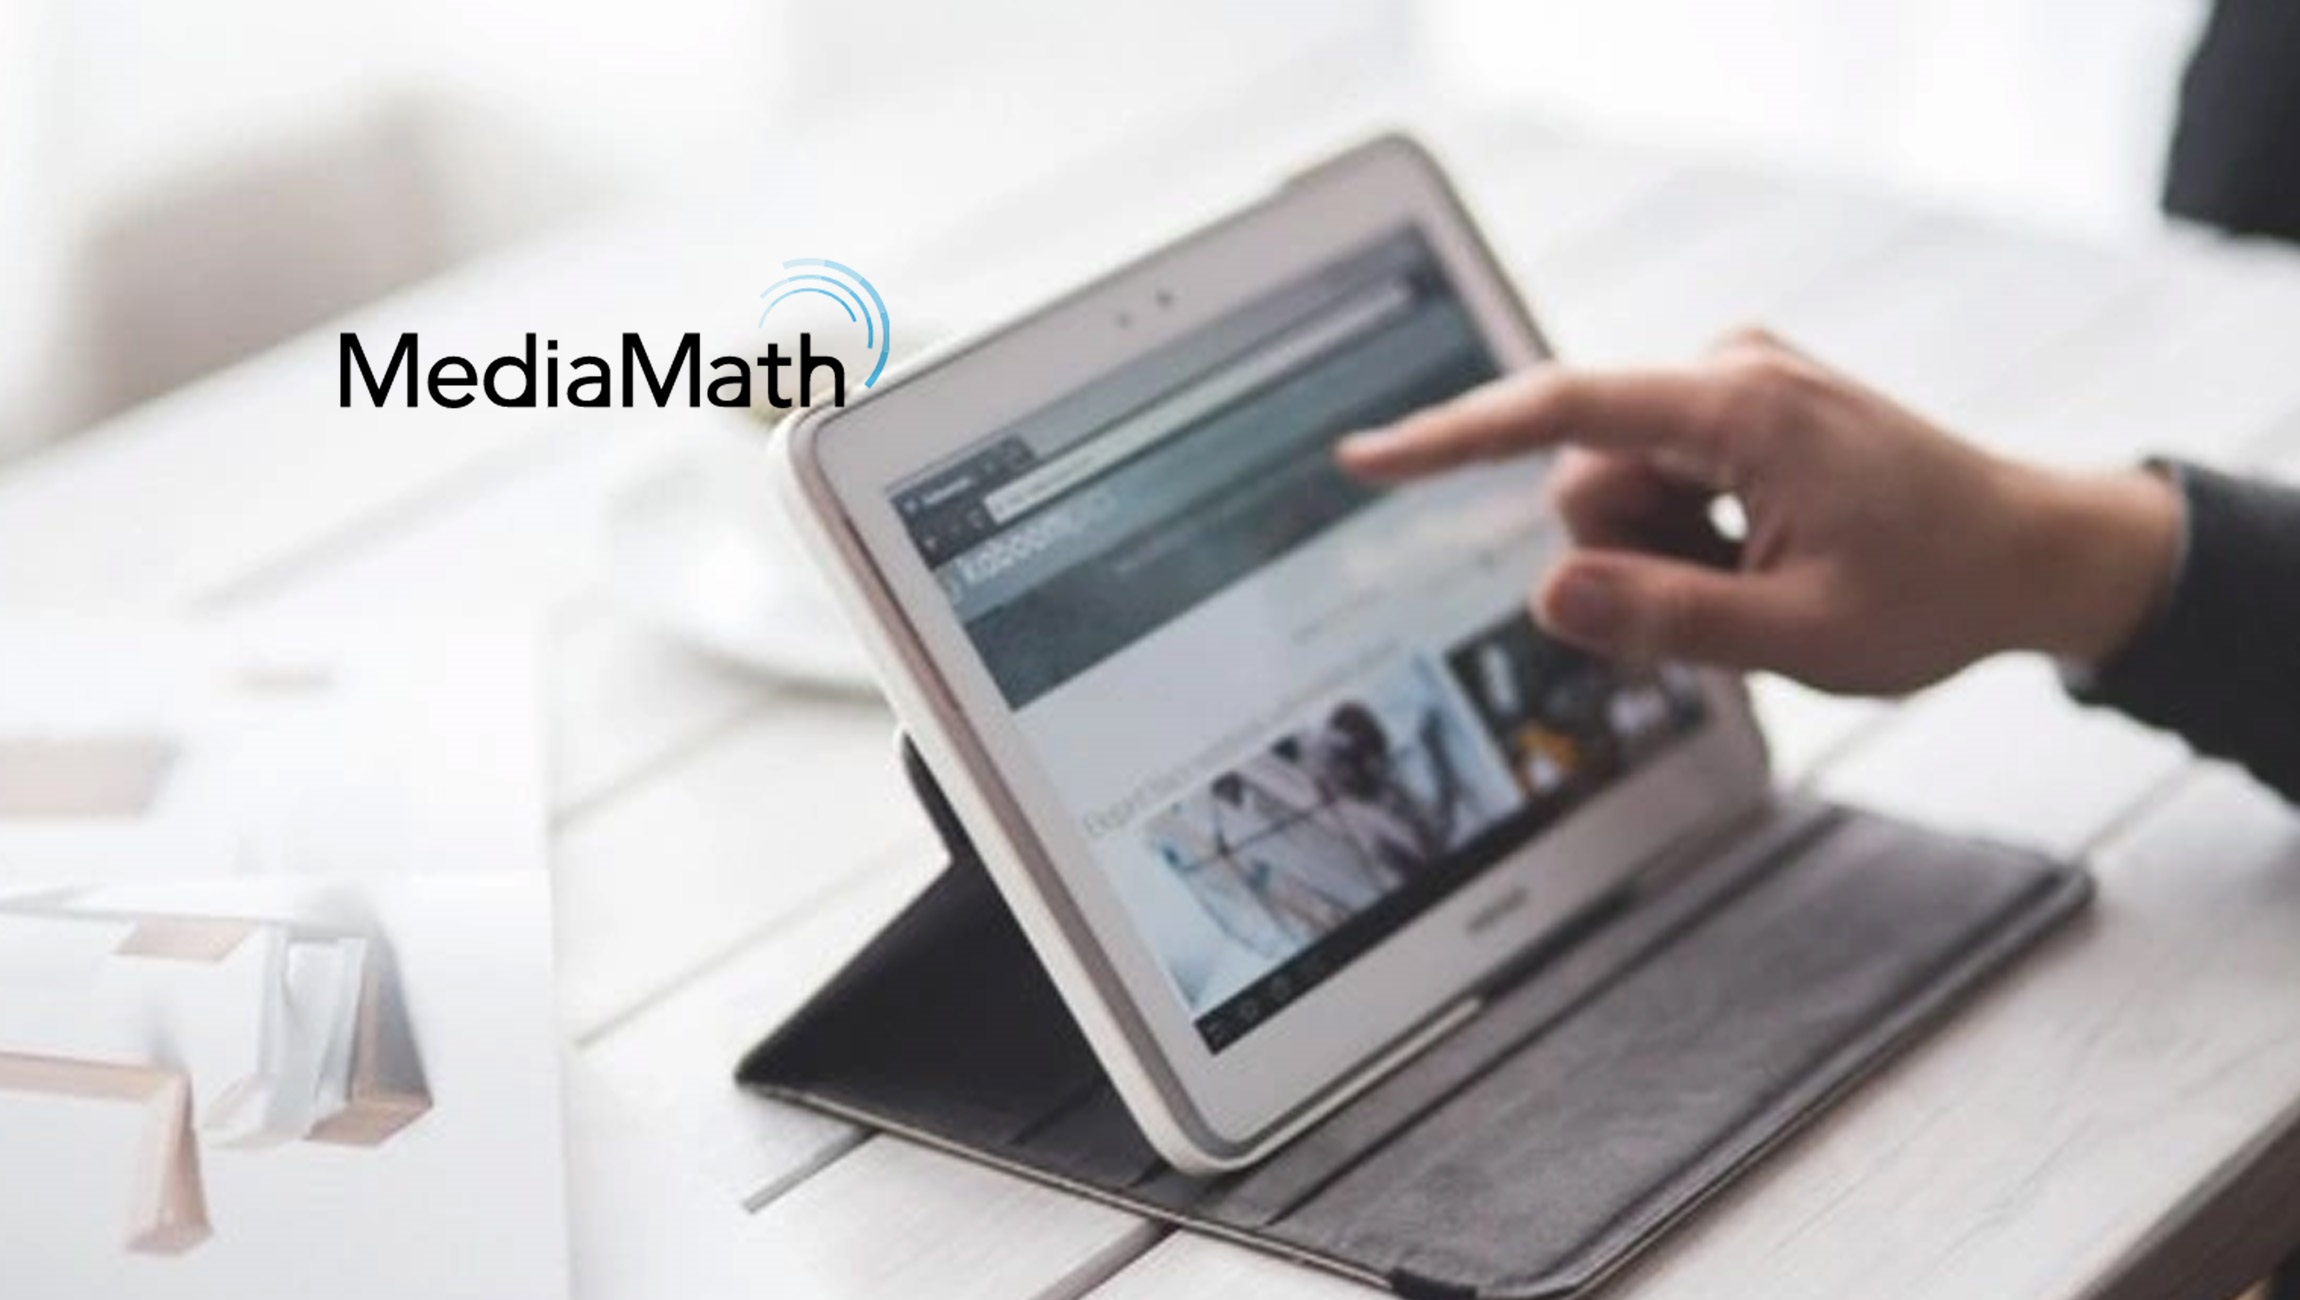 MediaMath Expands Purpose Driven Advertising Initiative; Champions Multicultural Media via Curated Marketplace